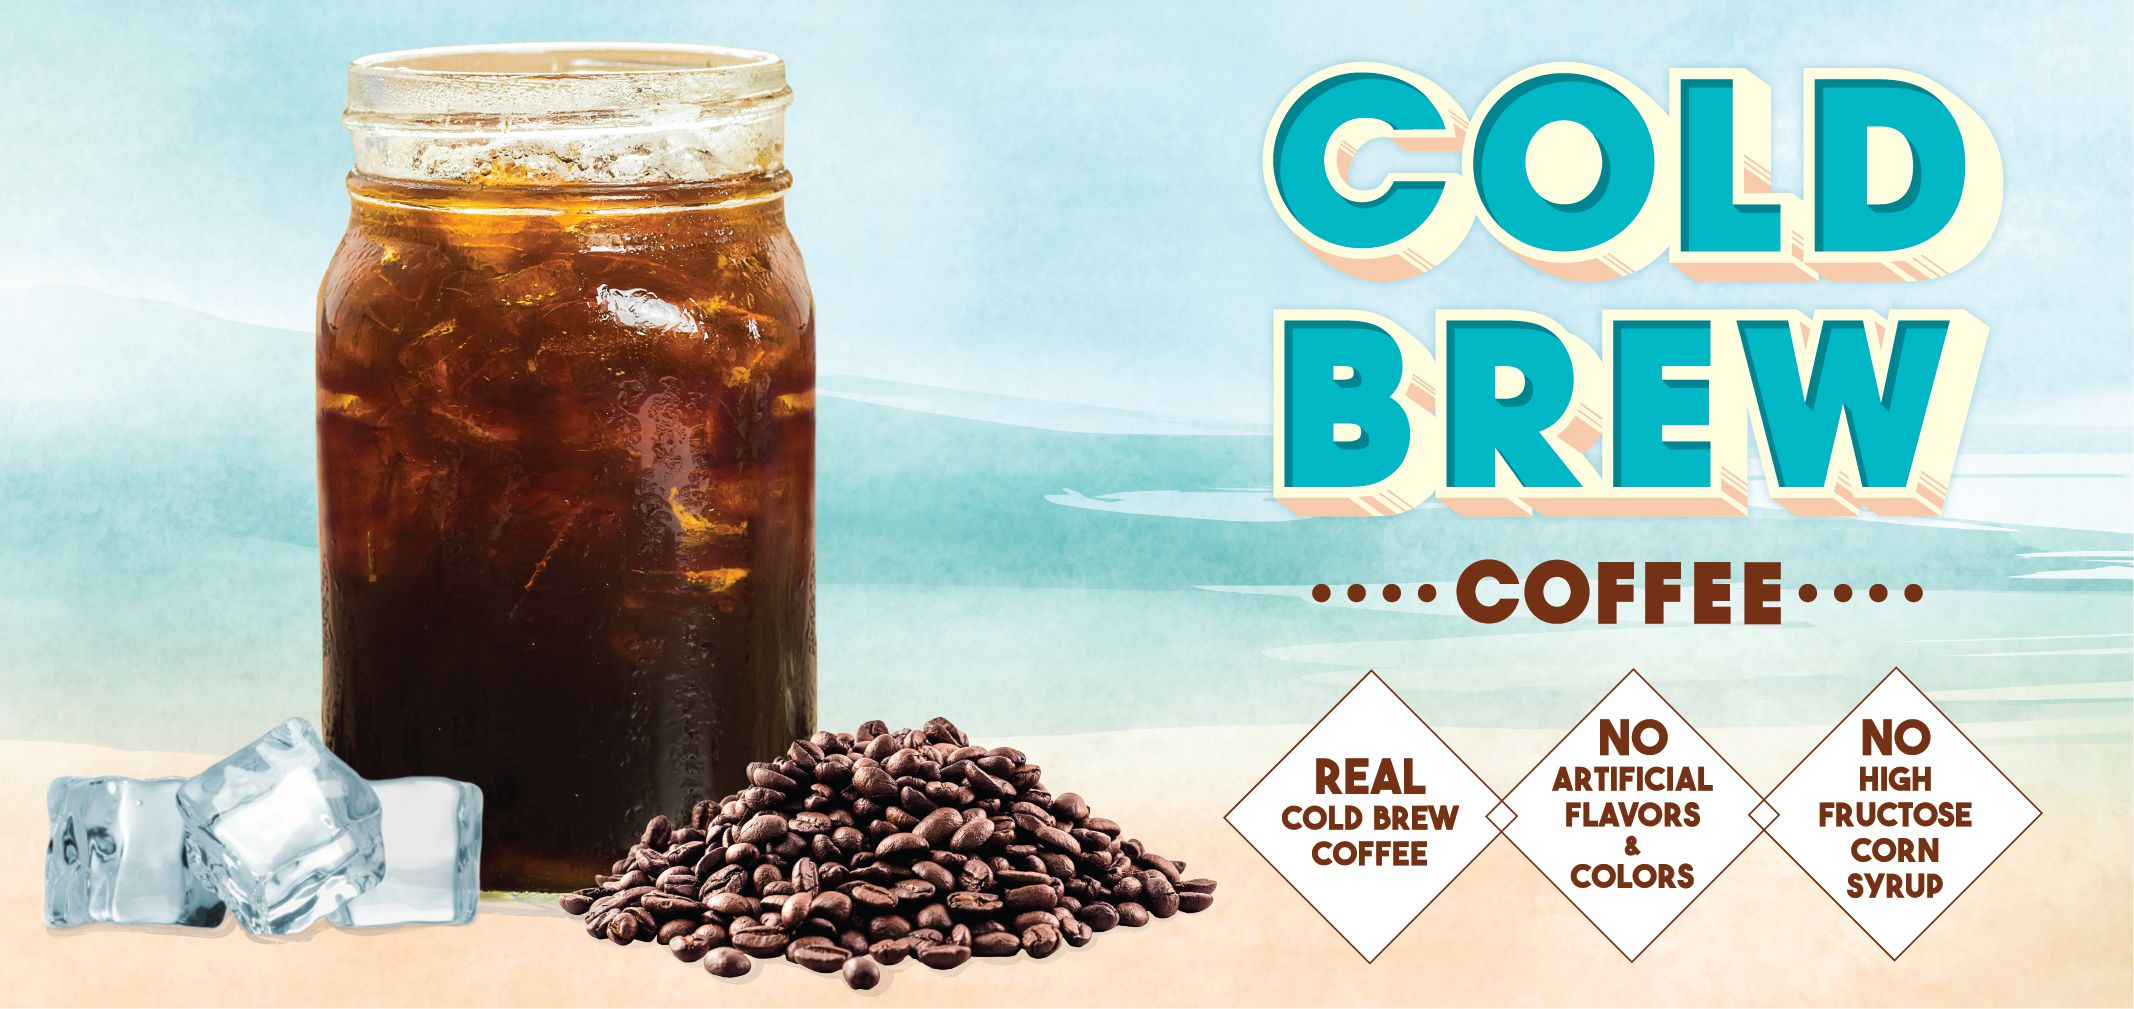 cold brew coffee label image